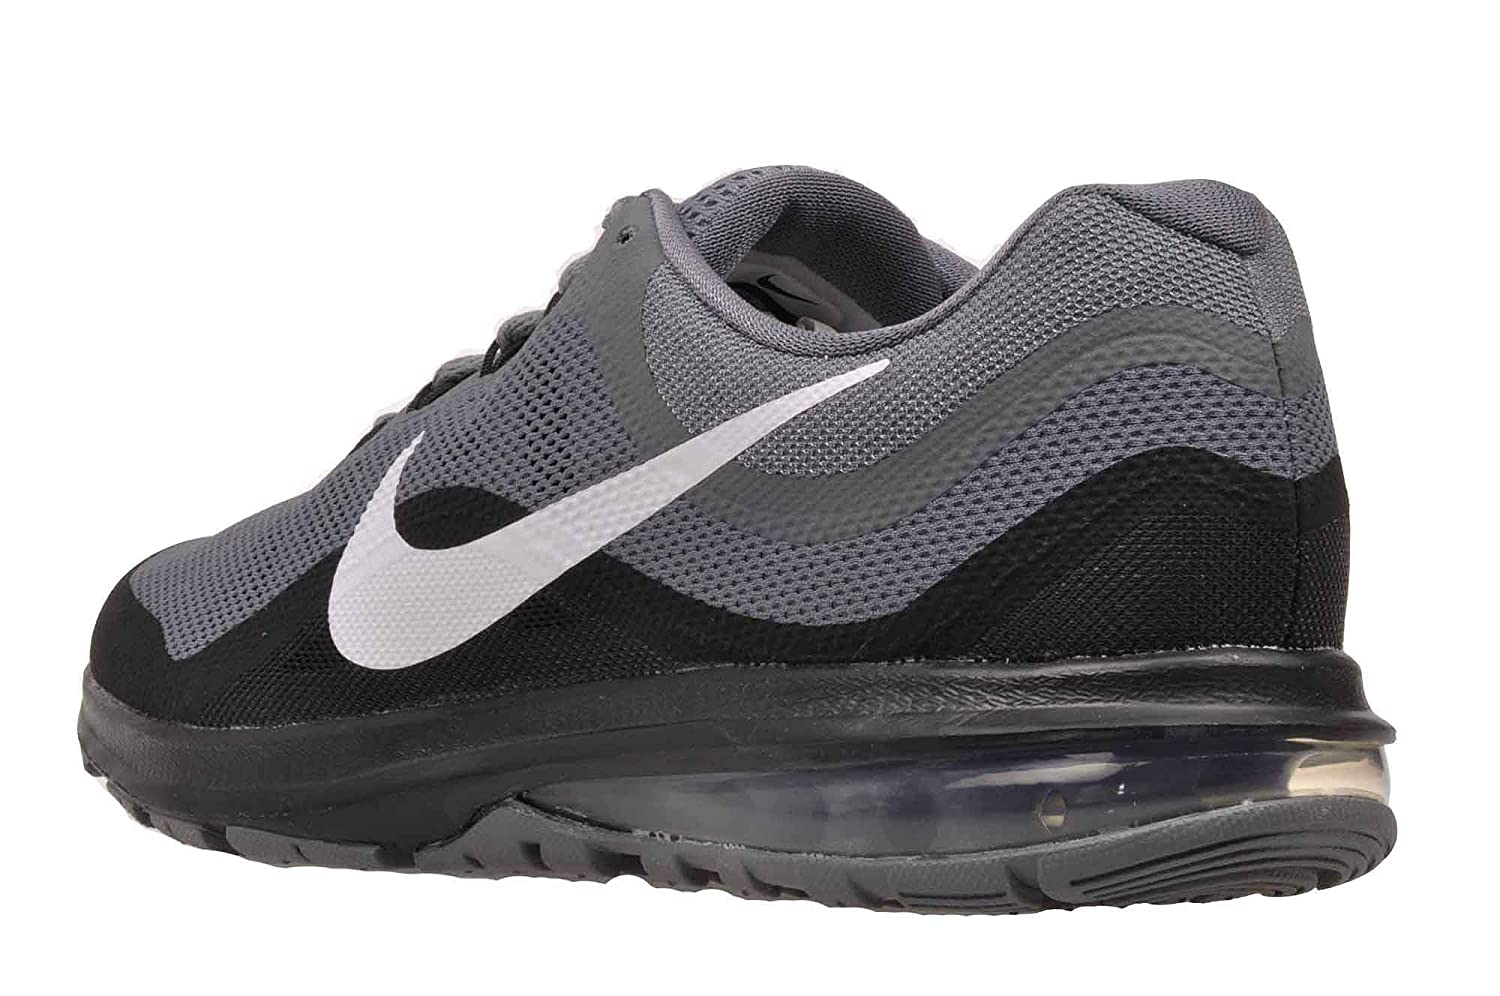 huge discount db684 c862e Nike Men s AIR MAX Dynasty 2 Cool Gry Wte-Blk Running Shoes-6 UK India (40  EU)(7 US) (852430-006)  Buy Online at Low Prices in India - Amazon.in